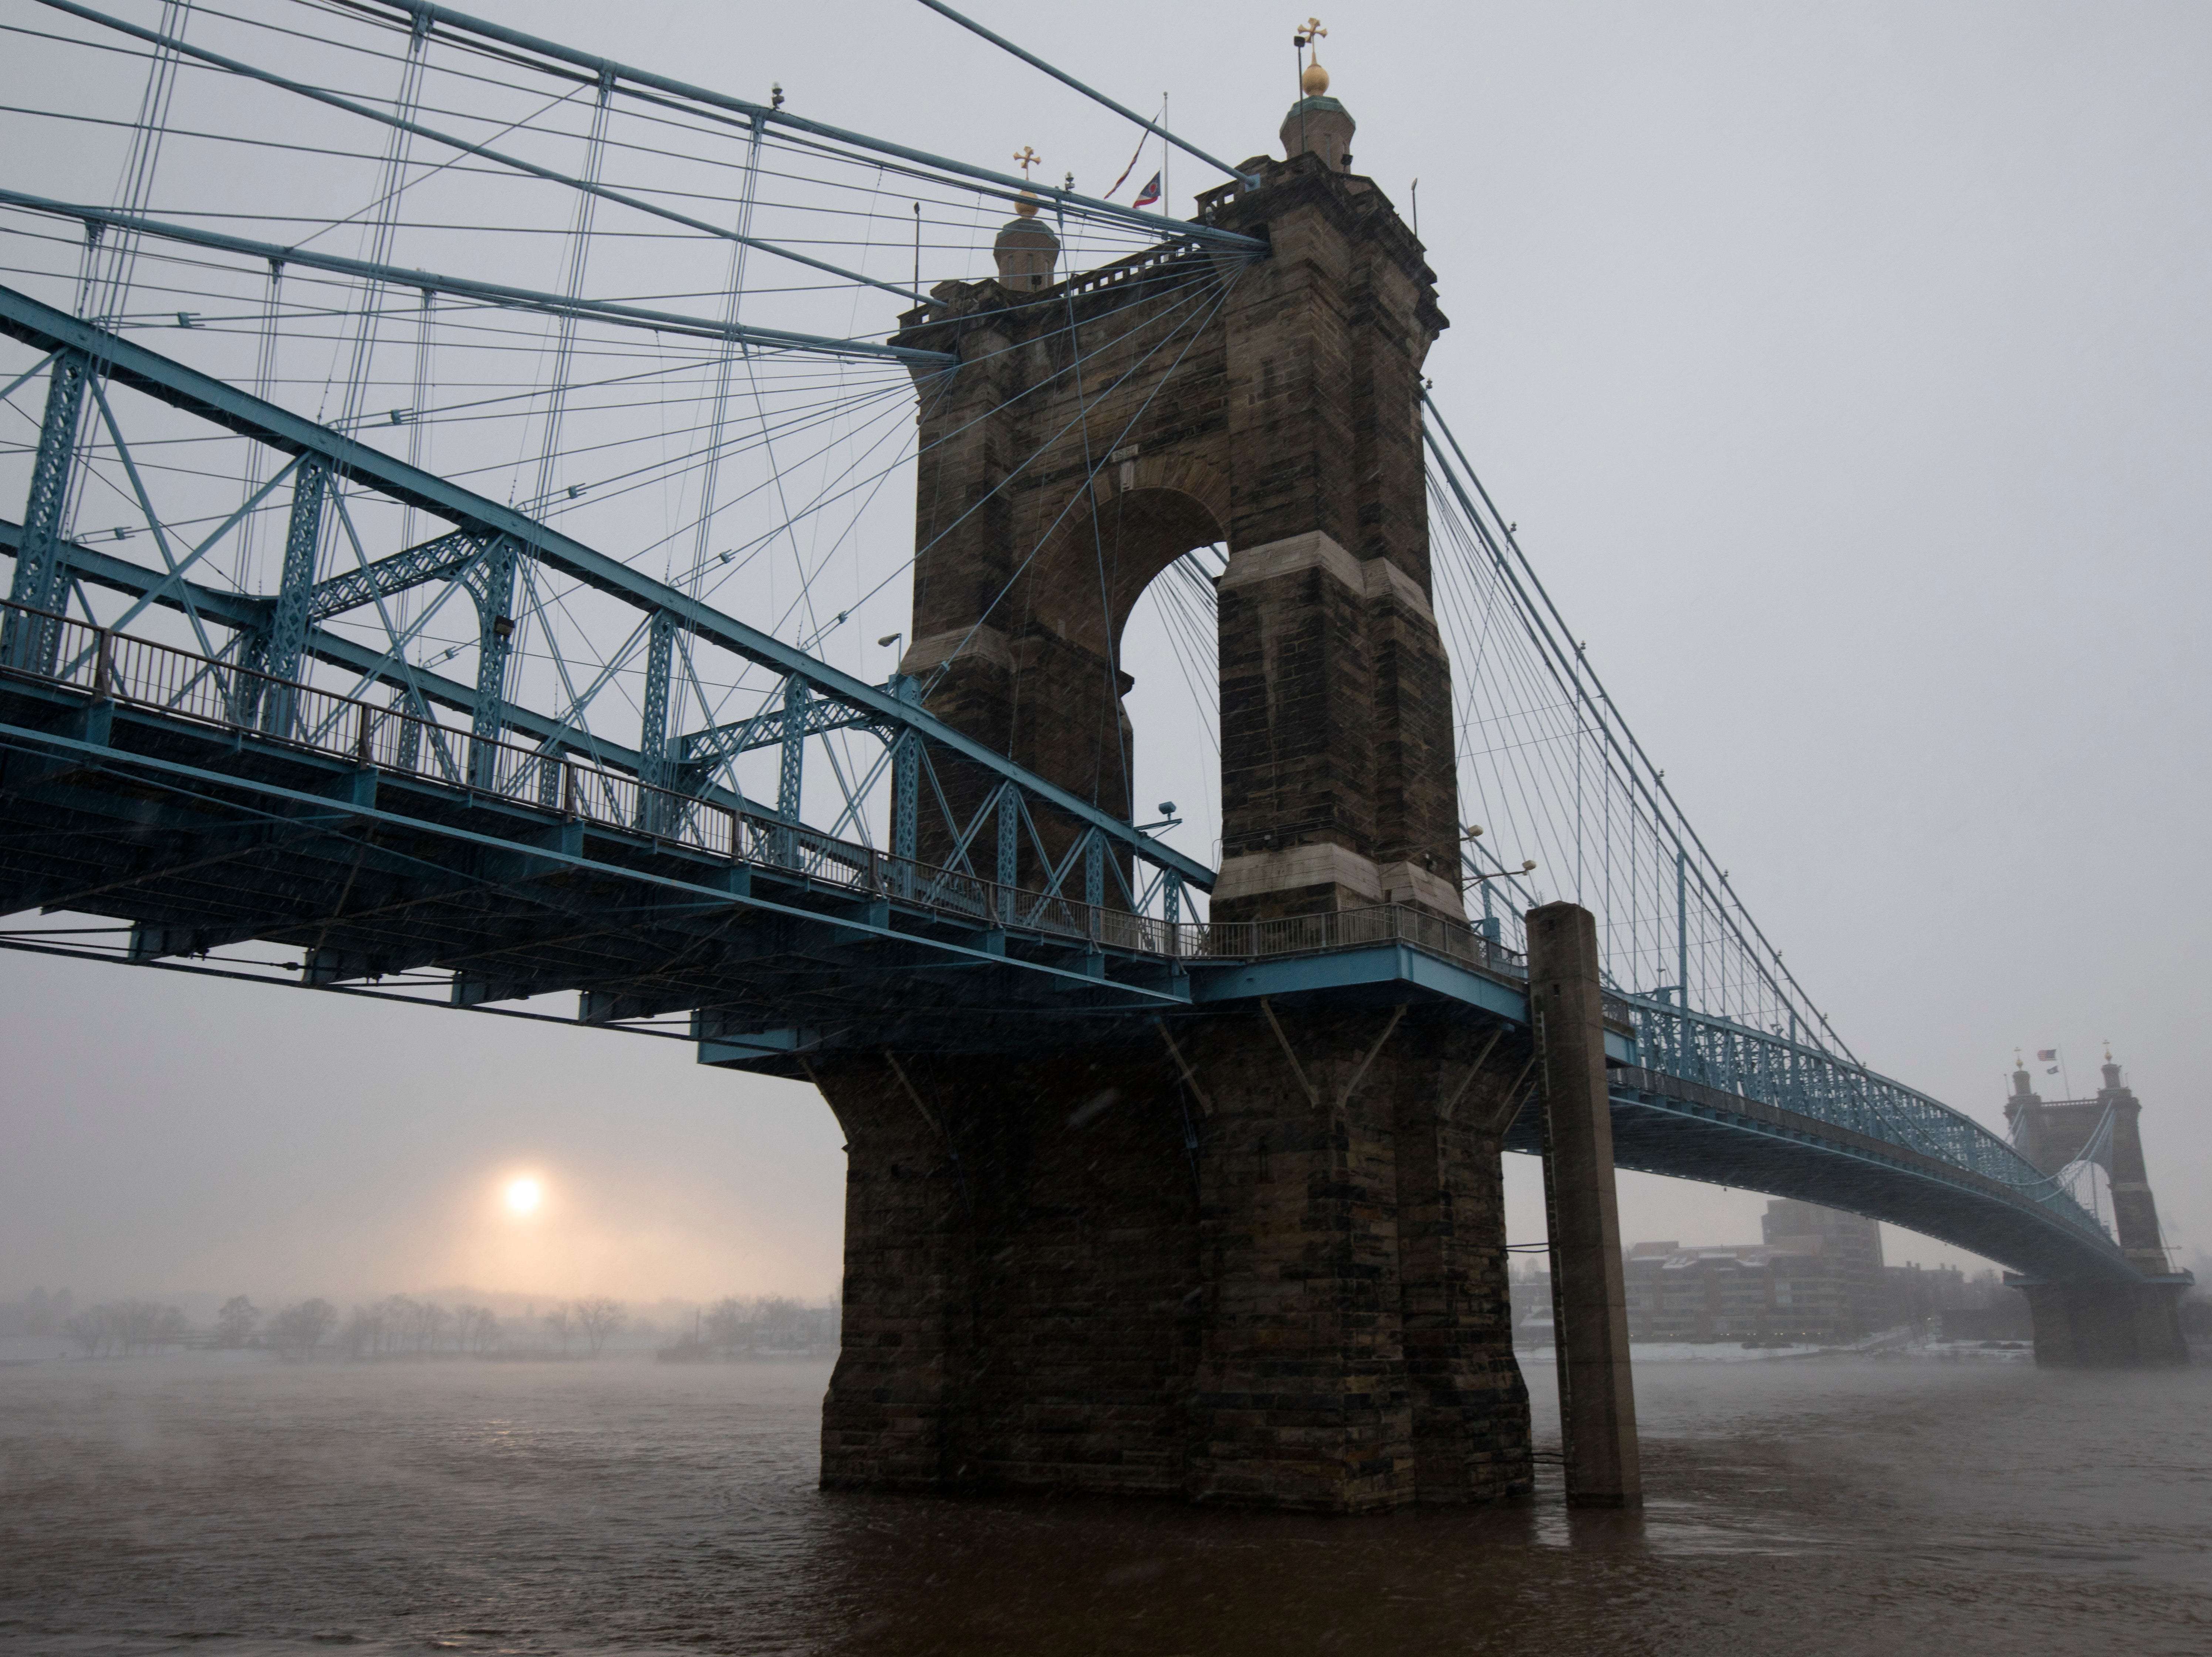 A view of the Roebling Bridge during a winter storm on Wednesday, Jan. 30, 2019, in Downtown Cincinnati. The extreme cold and record-breaking temperatures are moving through Ohio from a storm that pounded Missouri earlier this week. The National Weather Service has issued a wind chill advisory for the Cincinnati Area. The wind chill is currently -17 degrees Fahrenheit.